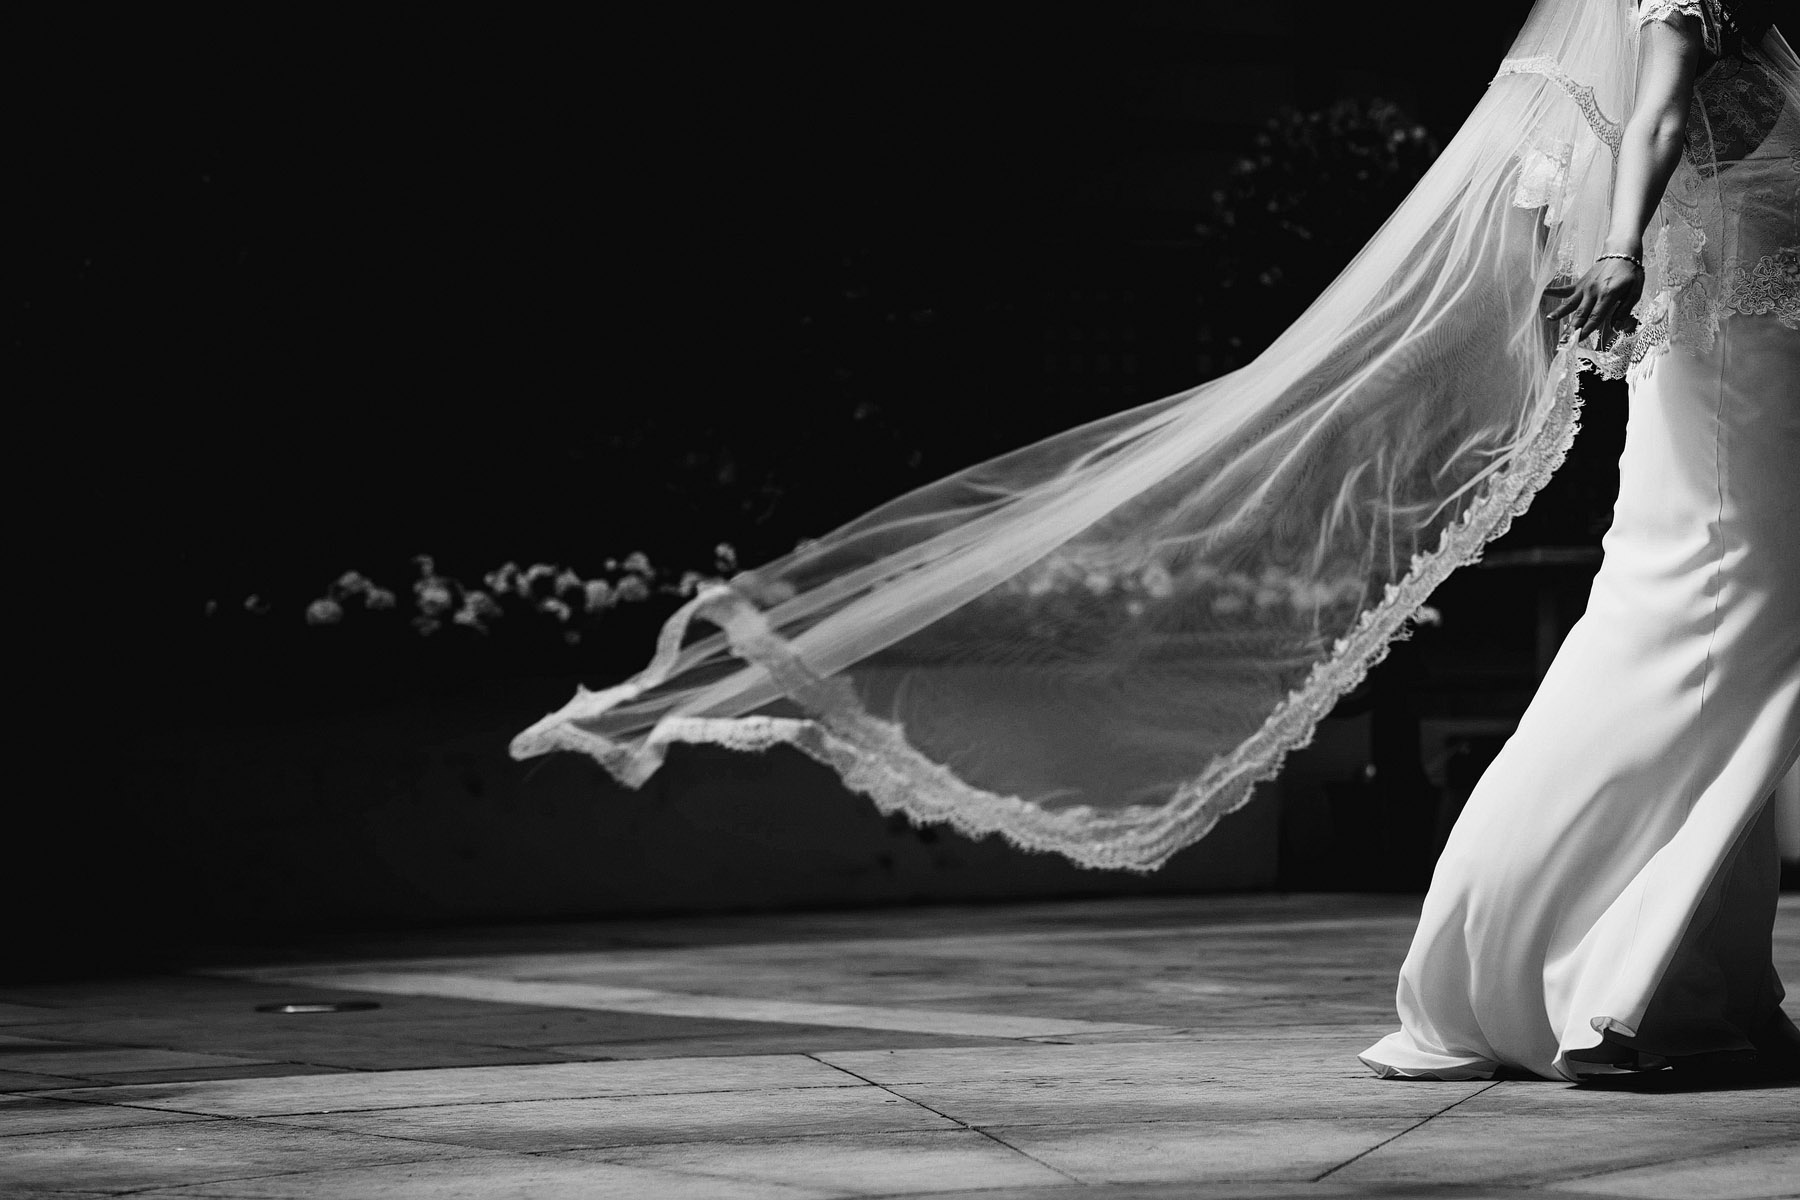 brides-veil-in-the-wind-by-rahul-khona